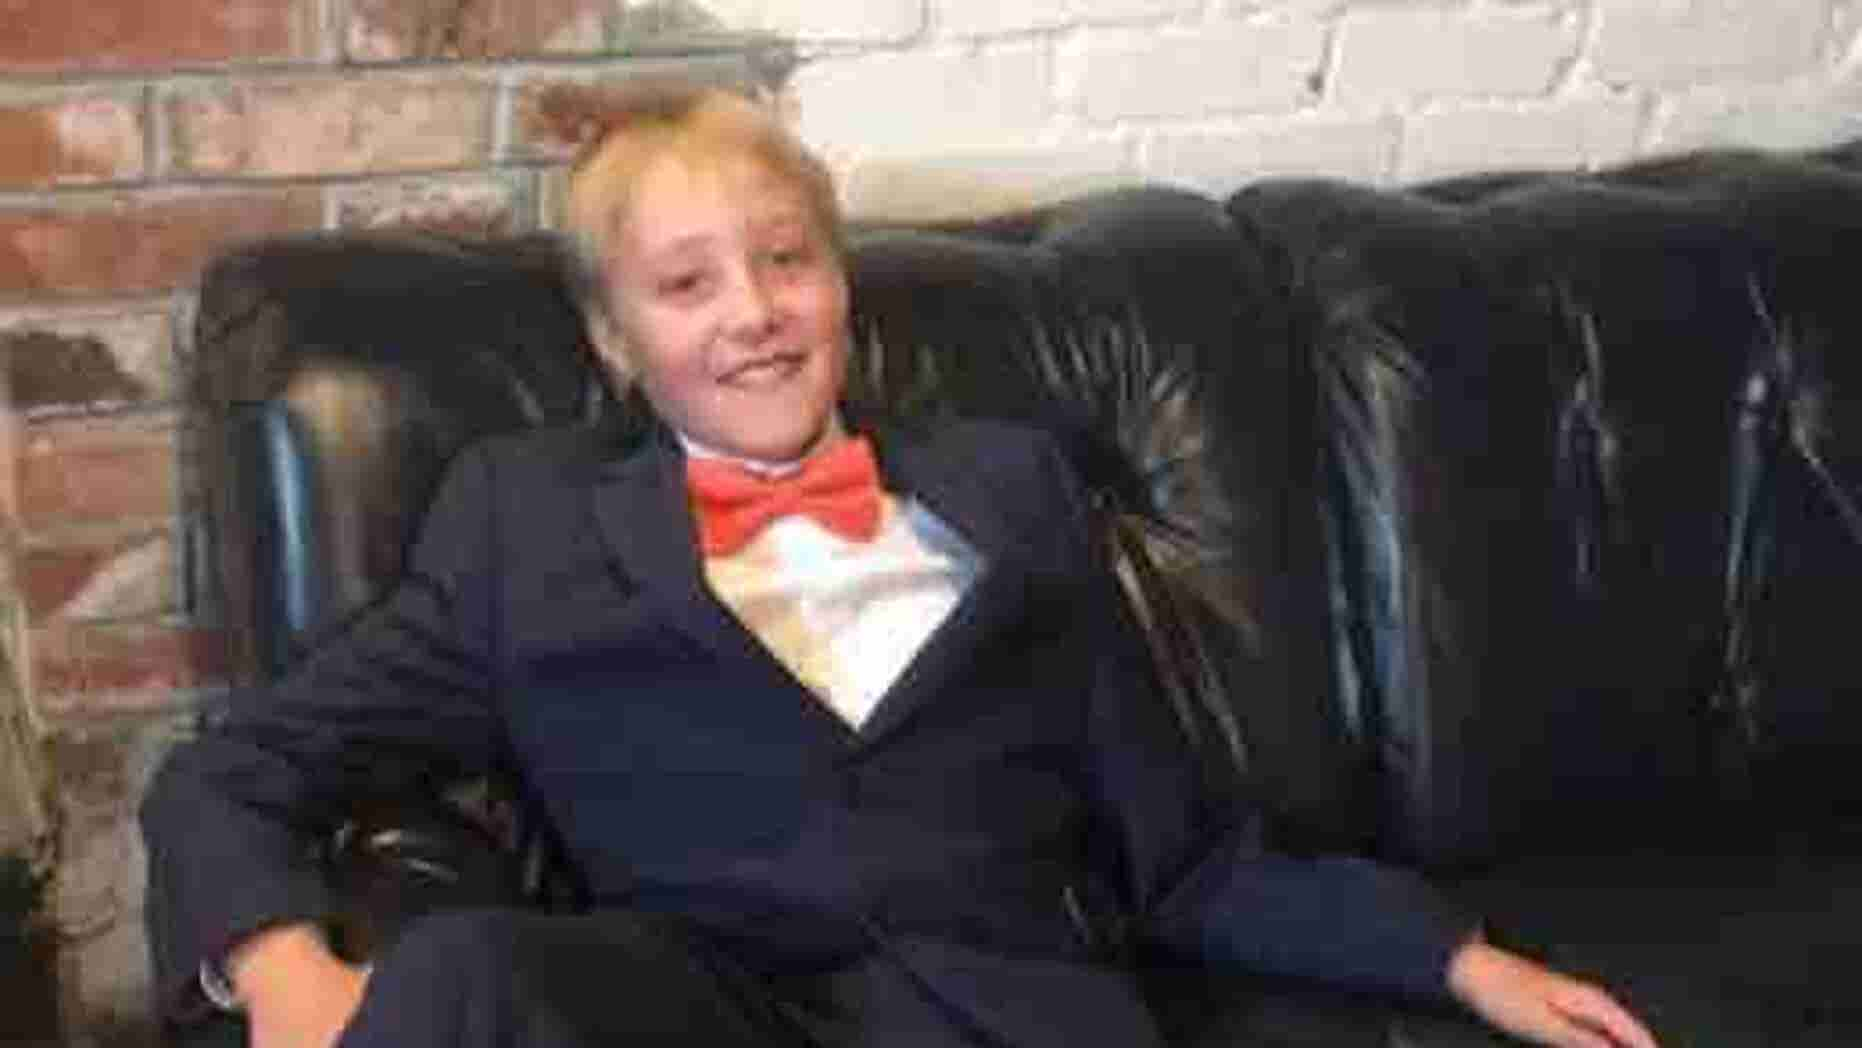 Carson, 11, had gone upstairs to pack for a family trip when his mom found him unresponsive 10 minutes later.